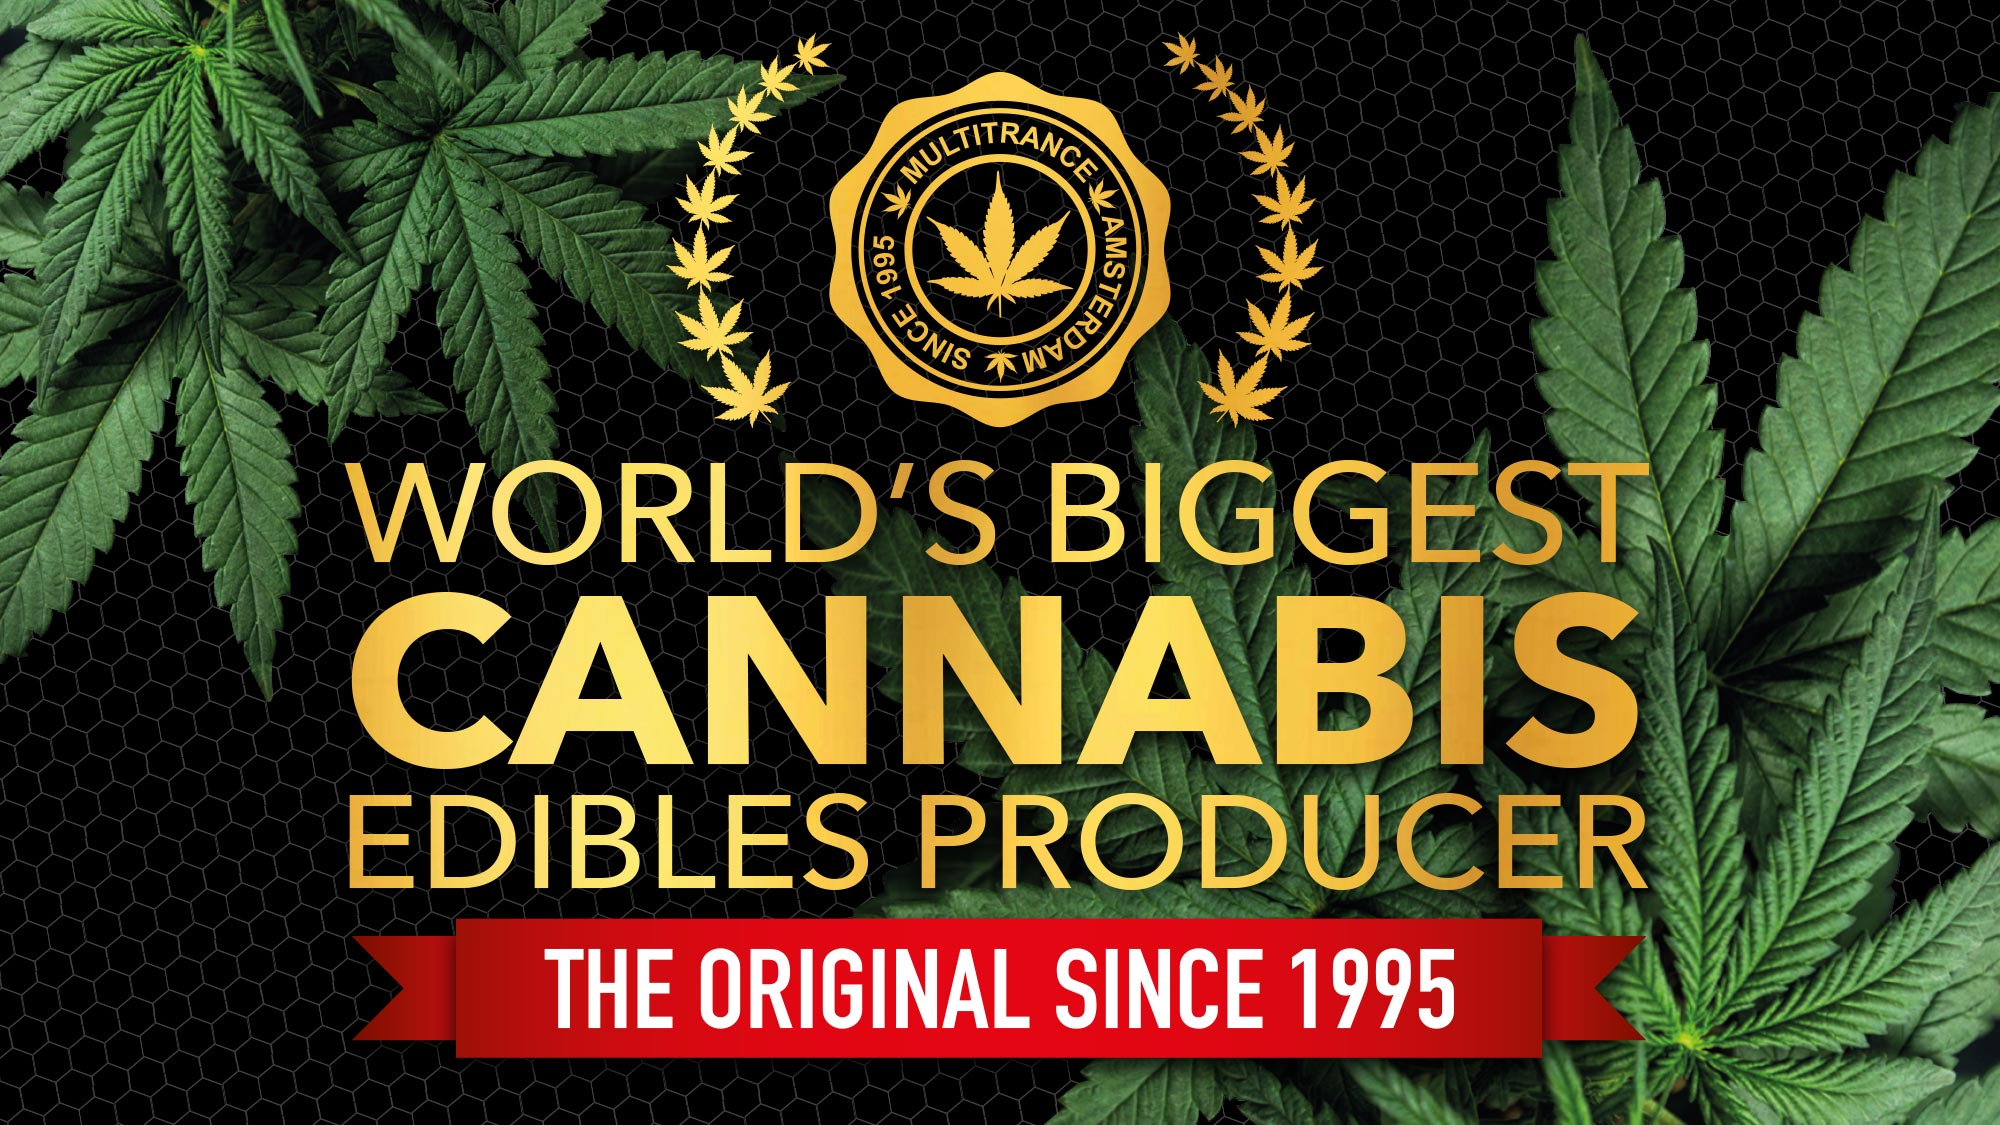 Multitrance logo displayed above title saying world's biggest cannabis edibles producer